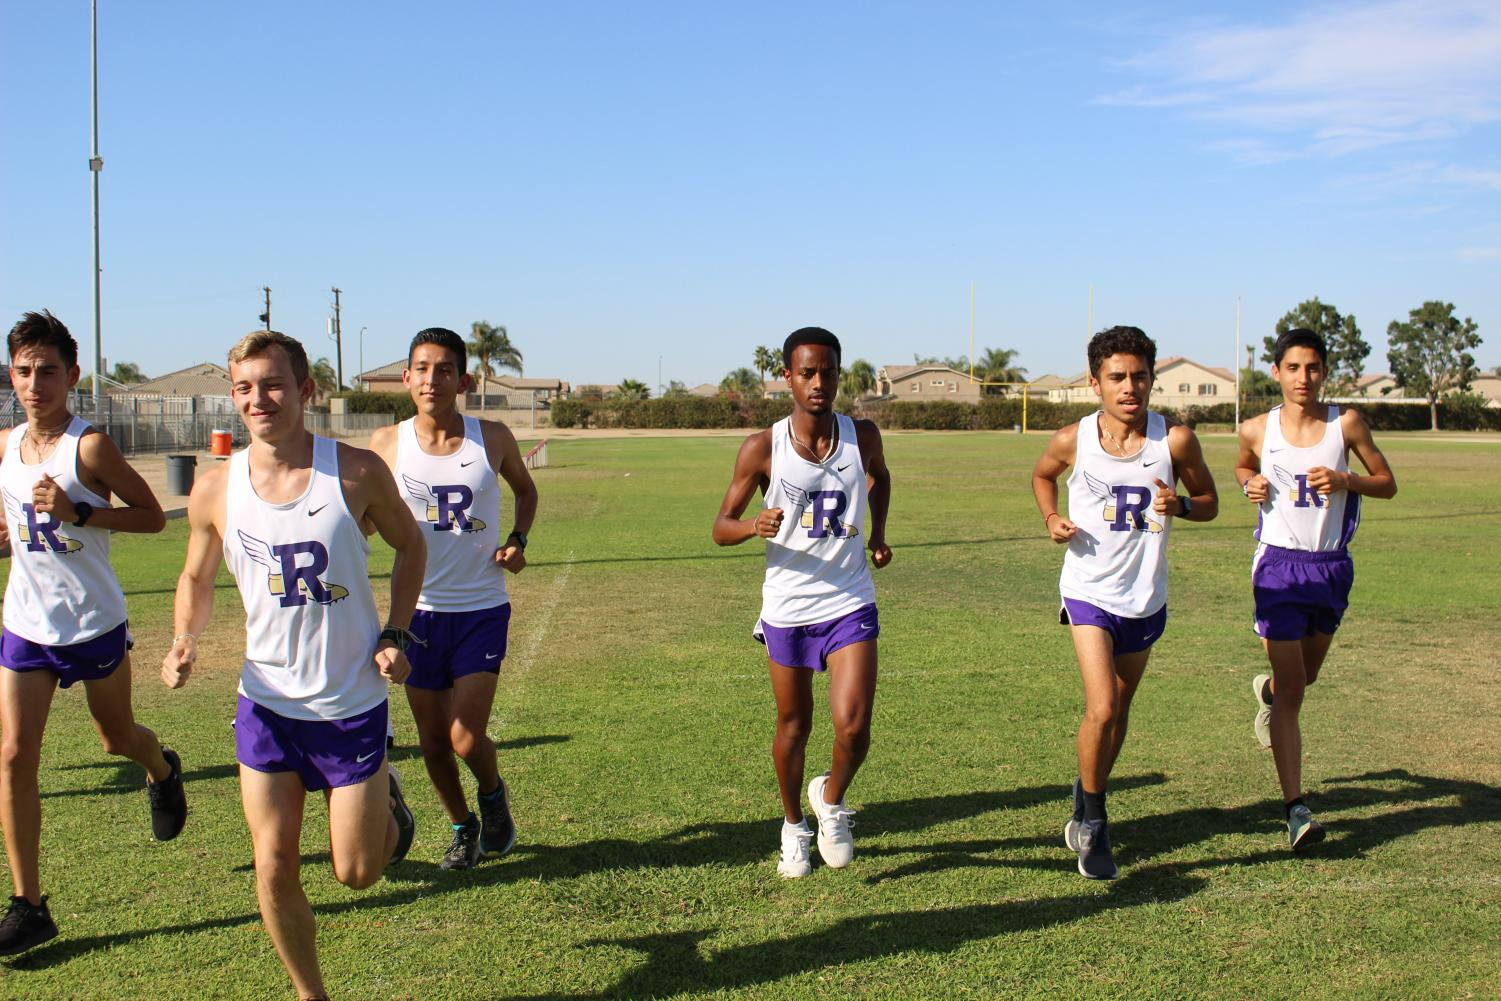 Returners form the state championship cross country team practice at Ridgeview.